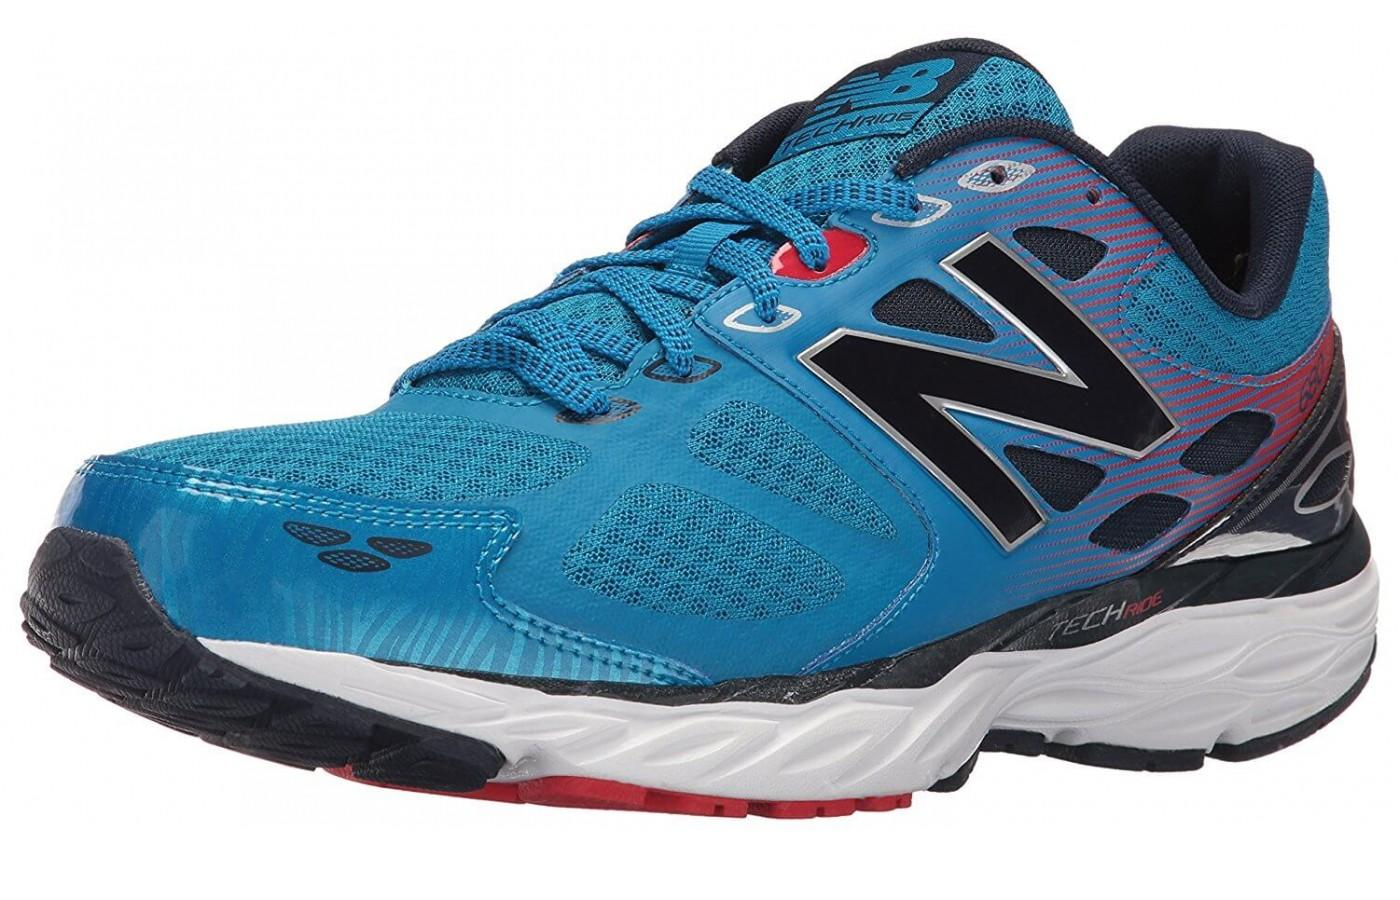 the New Balance 680 v3 is a comfortable and stylish stability shoe ...